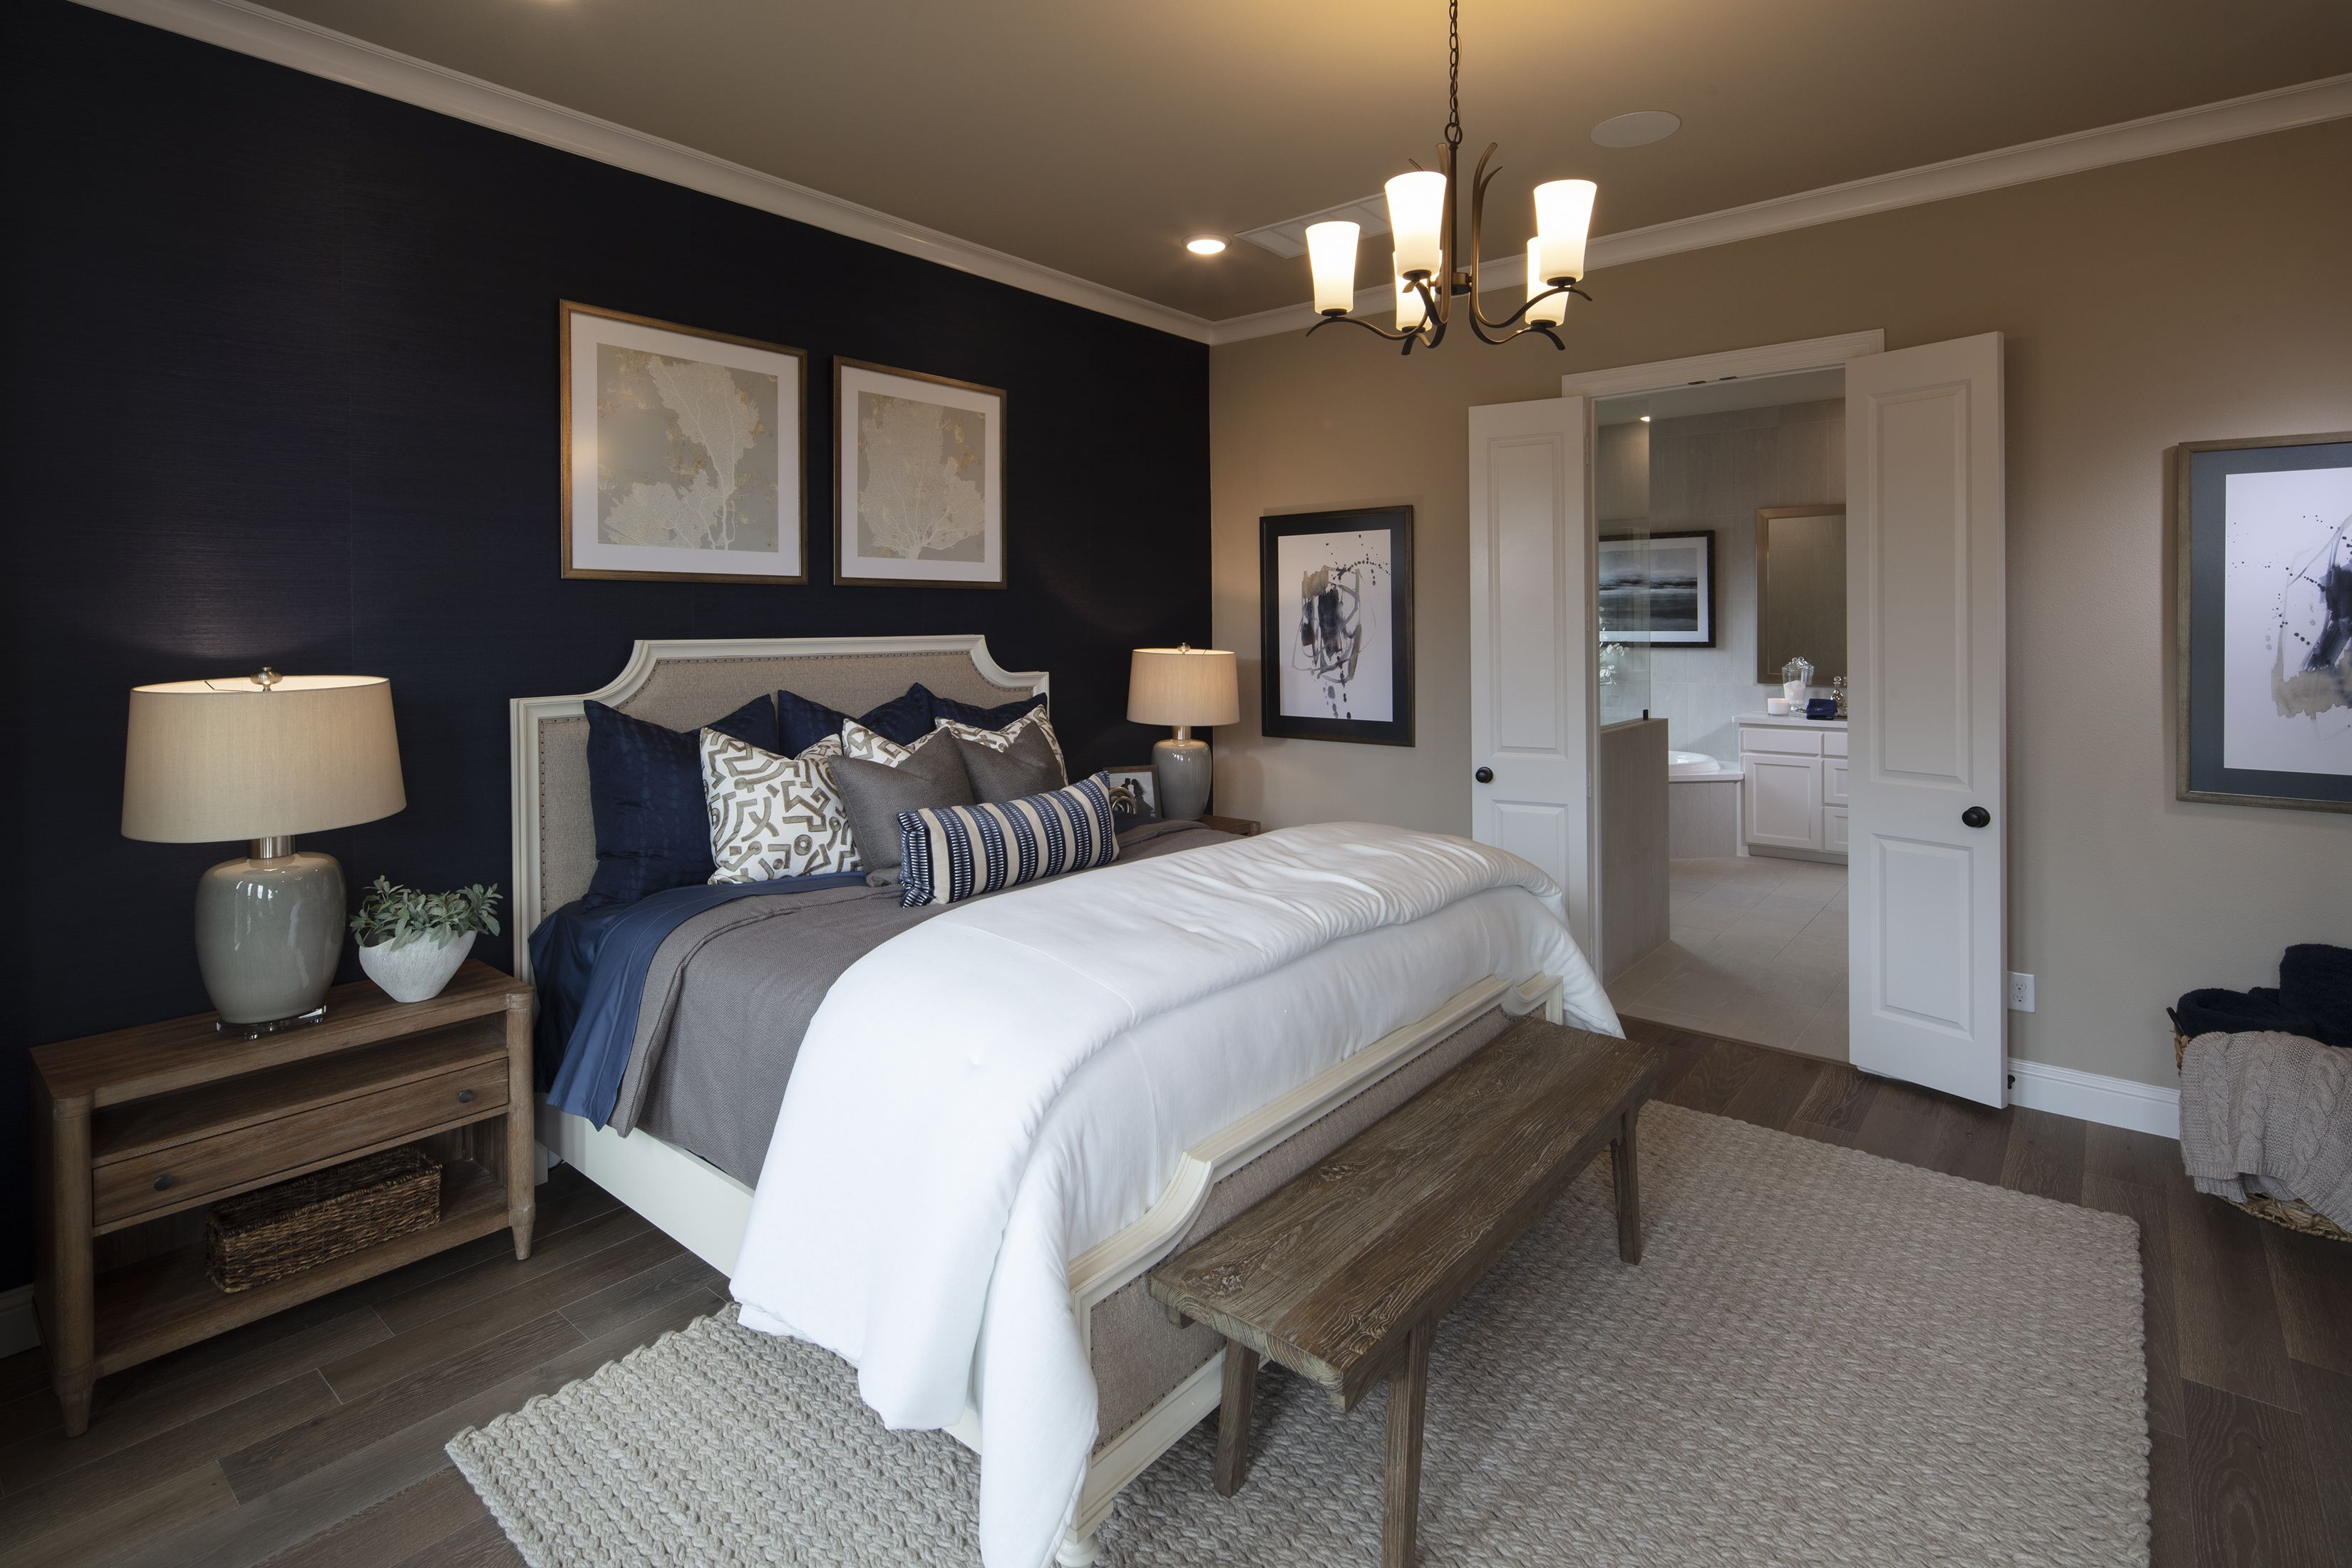 Bedroom Decor Navy Blue Accent Wall Blue Master Bedroom Master Bedroom Accents Blue Bedroom Walls